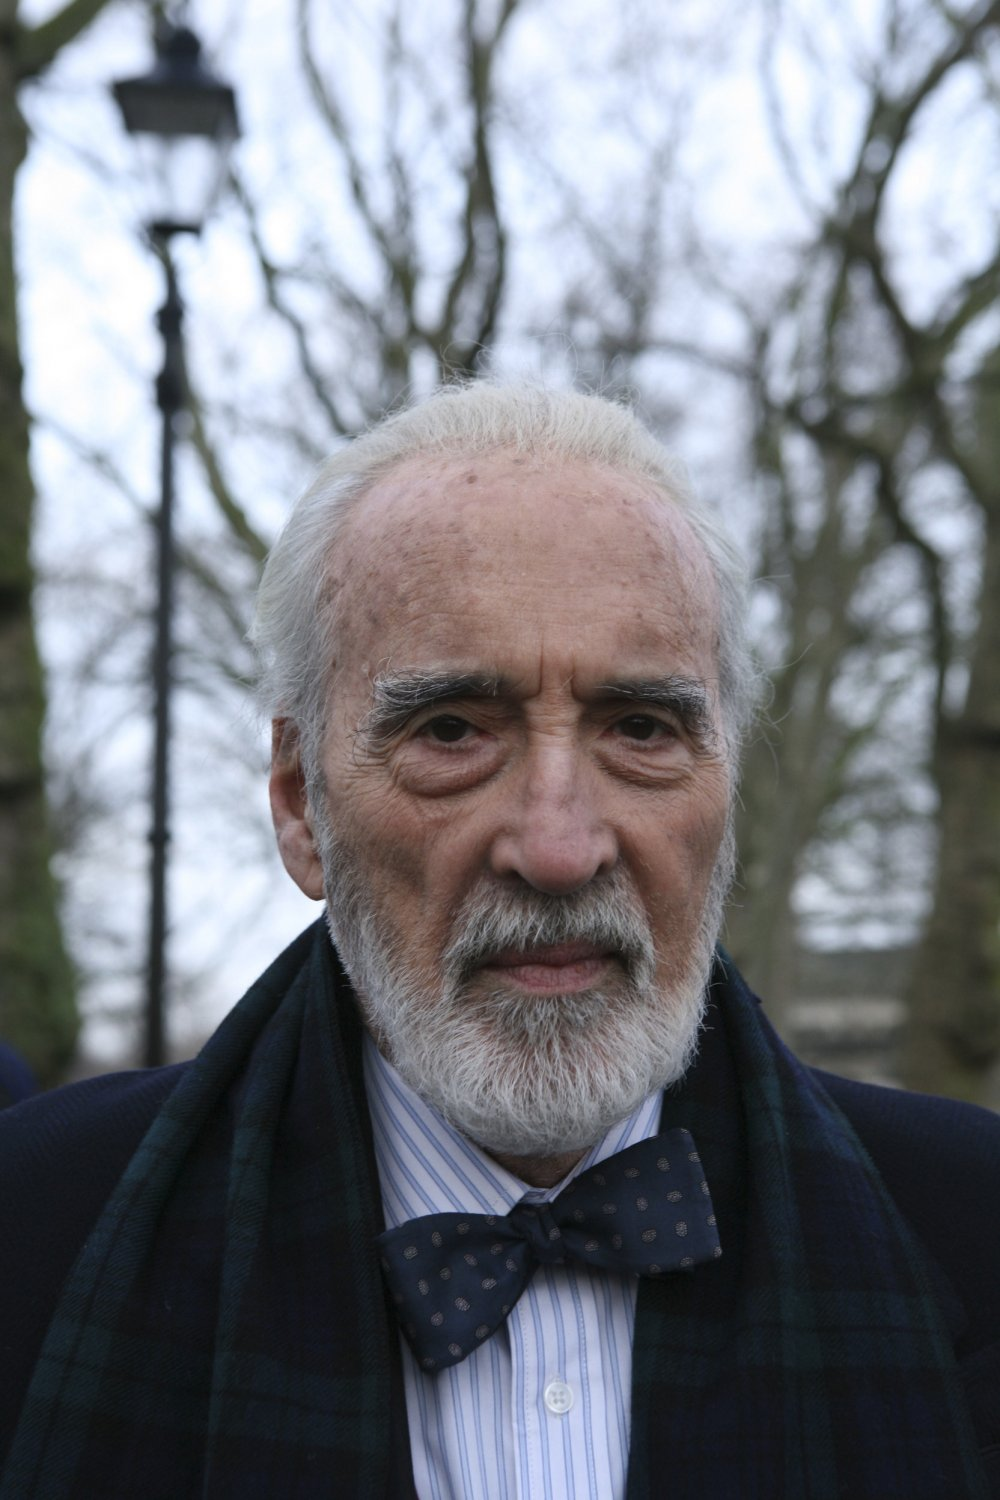 Christopher Lee in Stephen Poliakoff's Glorious 39 (2009)